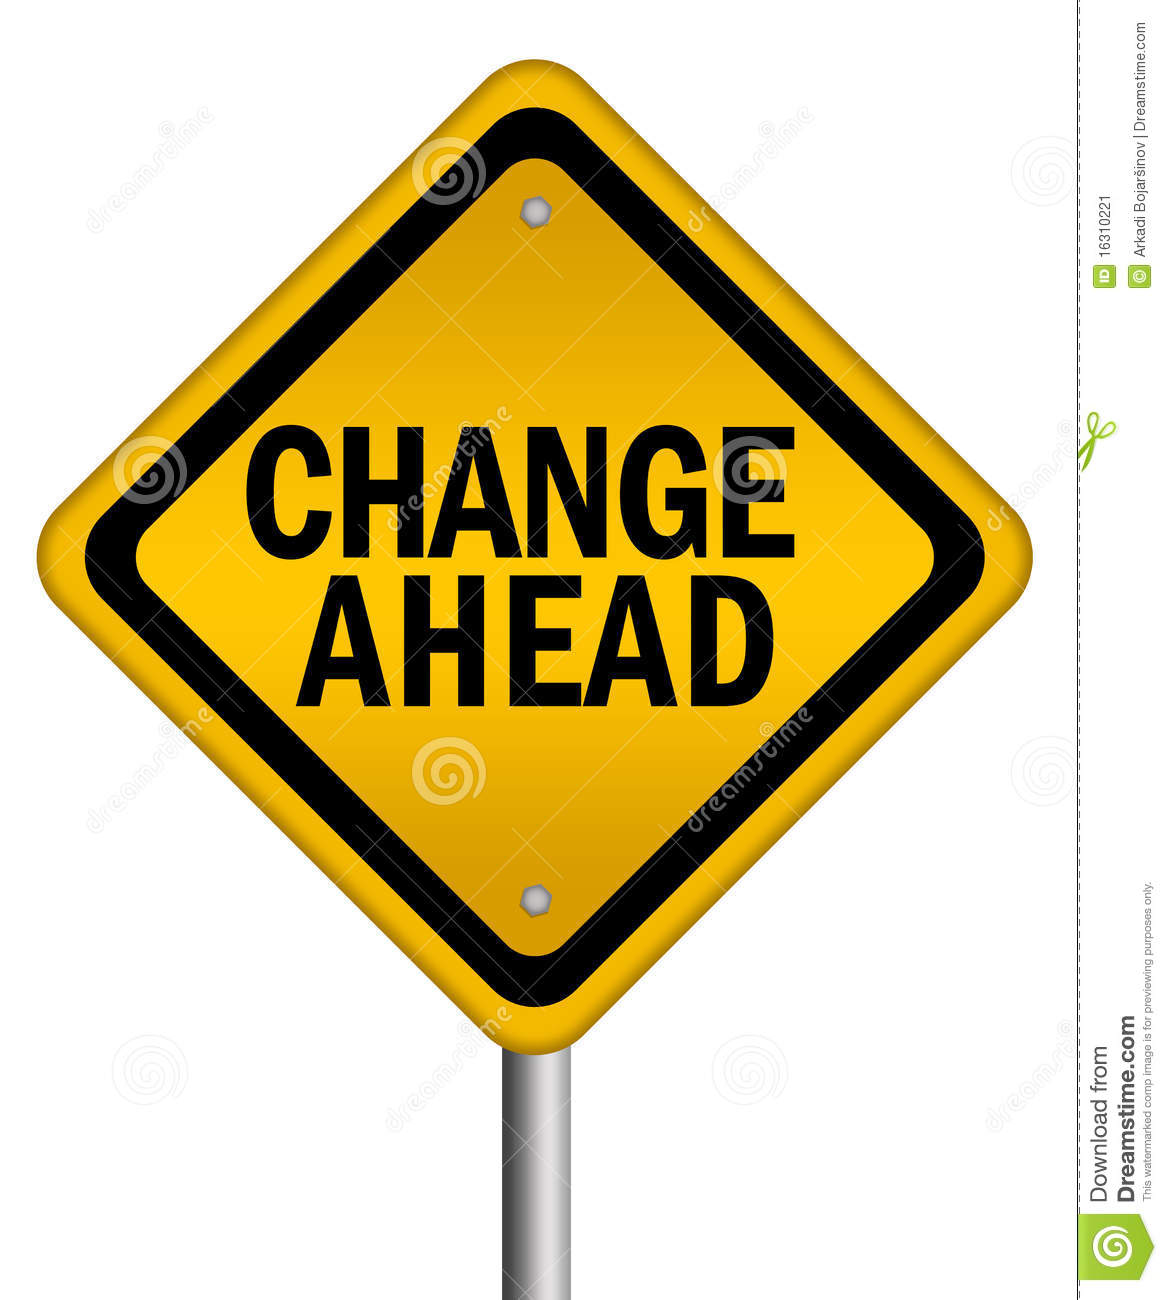 Change clipart png. Symbol for